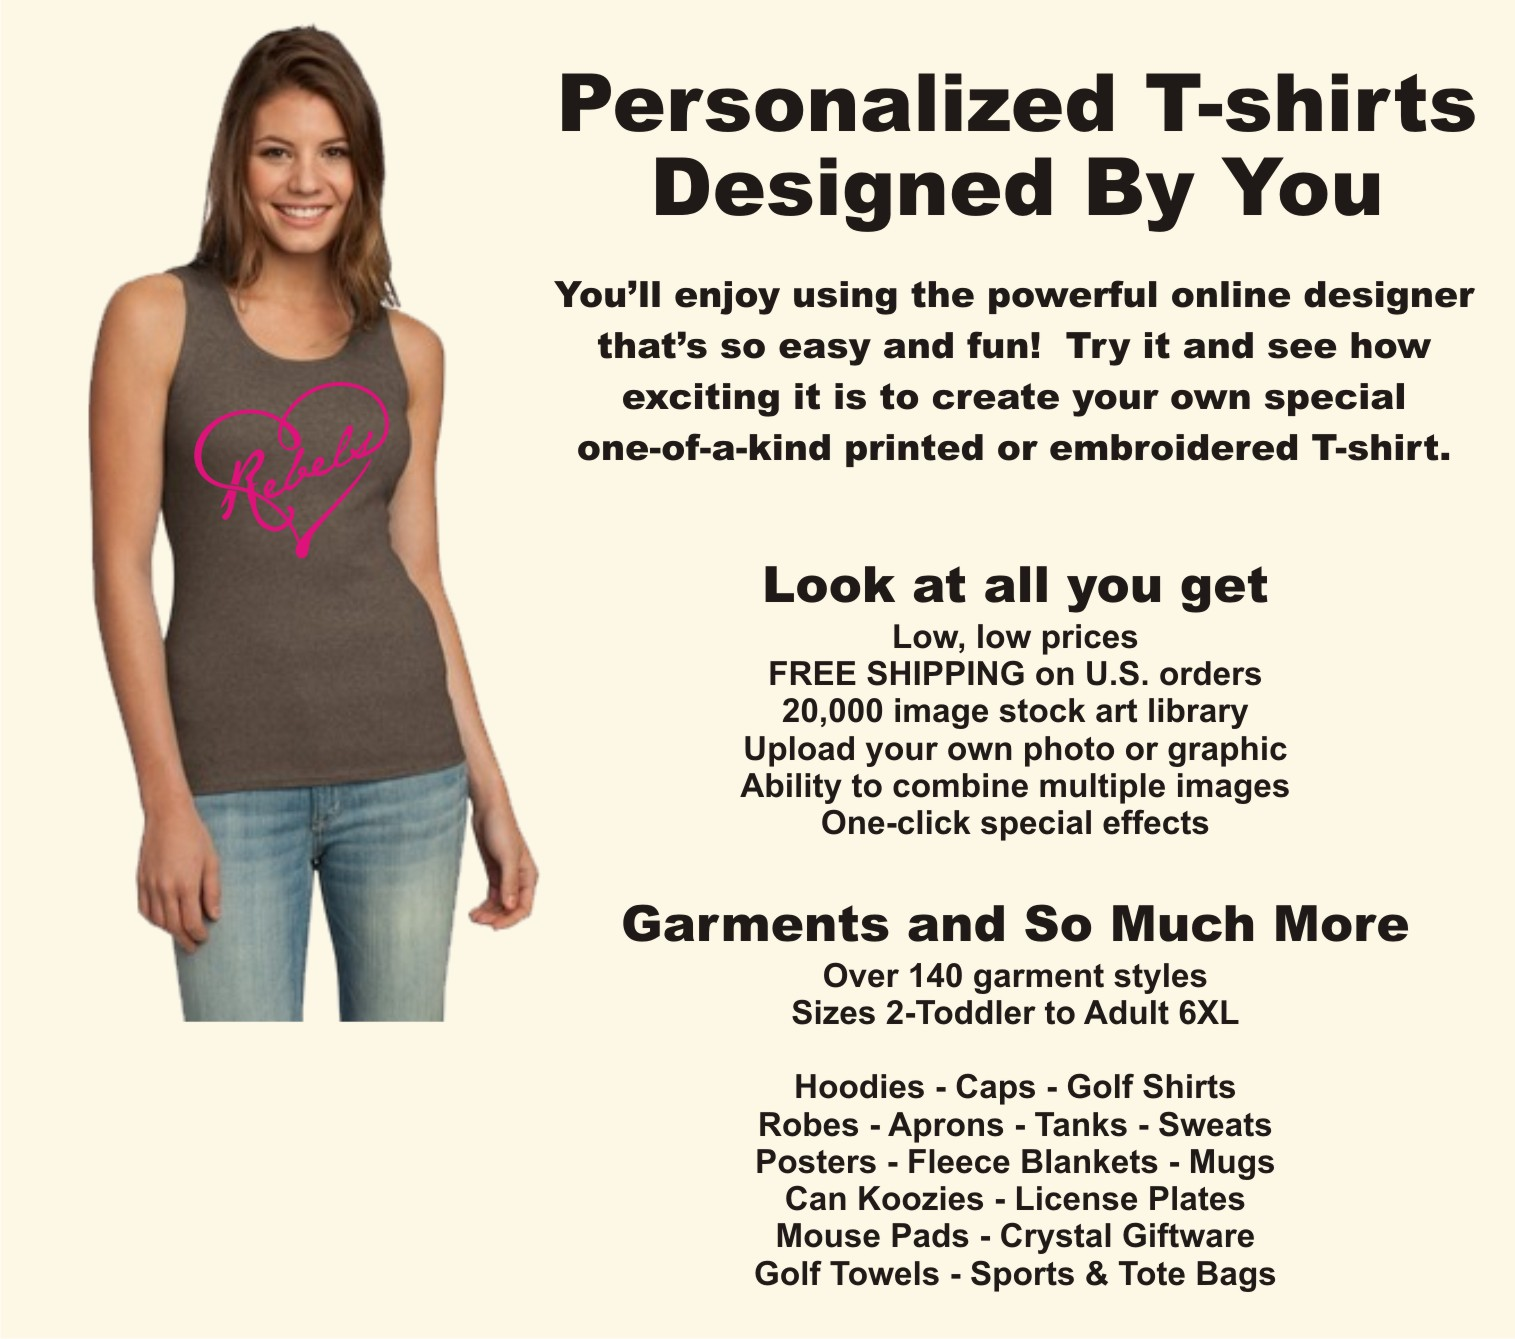 fe008e358c Design, personalize, create, and customize your own T-shirt or tee shirt